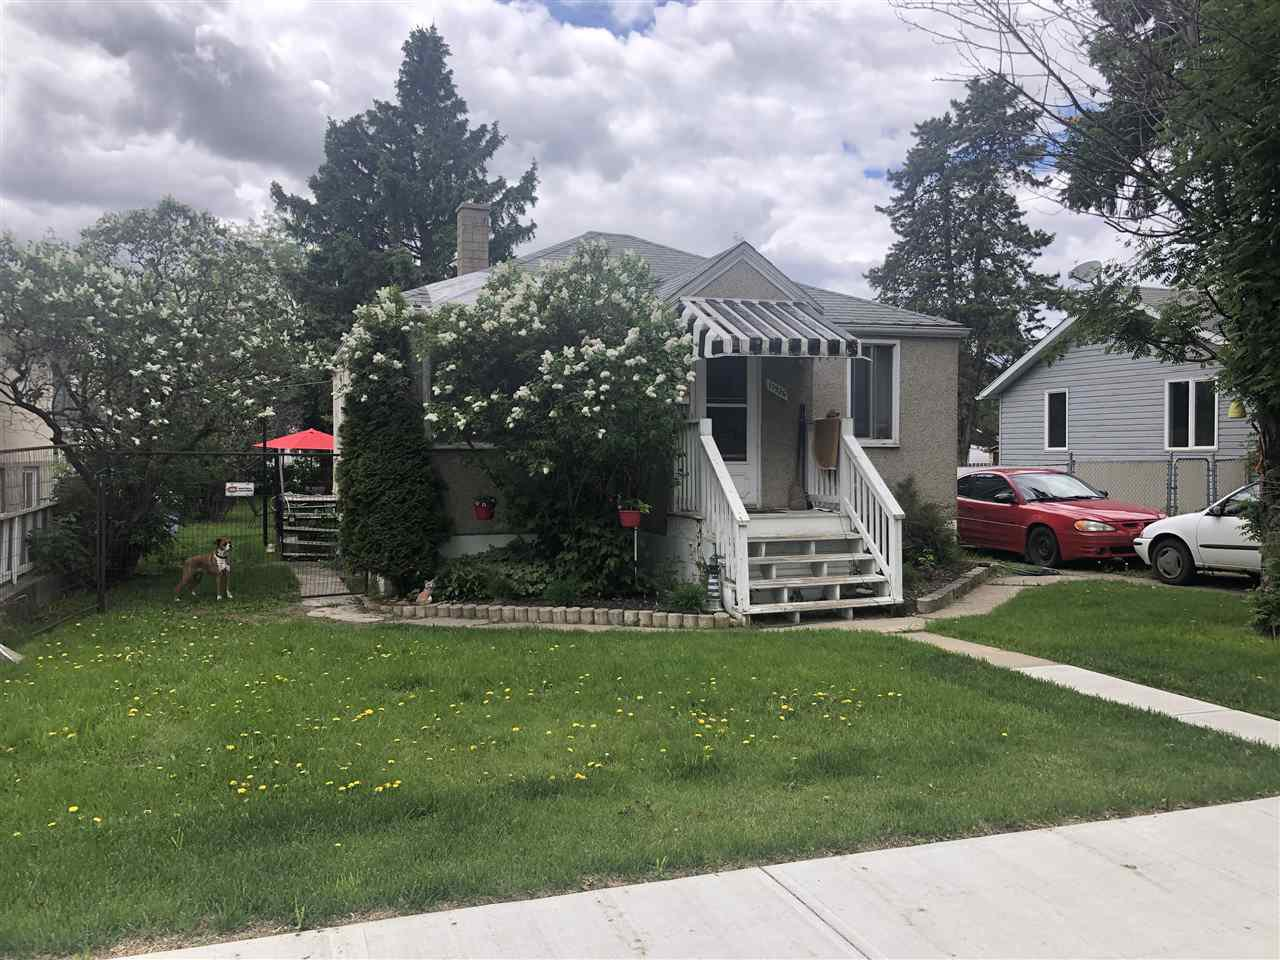 Main Photo: 11926 123 Street in Edmonton: Zone 04 House for sale : MLS®# E4200417